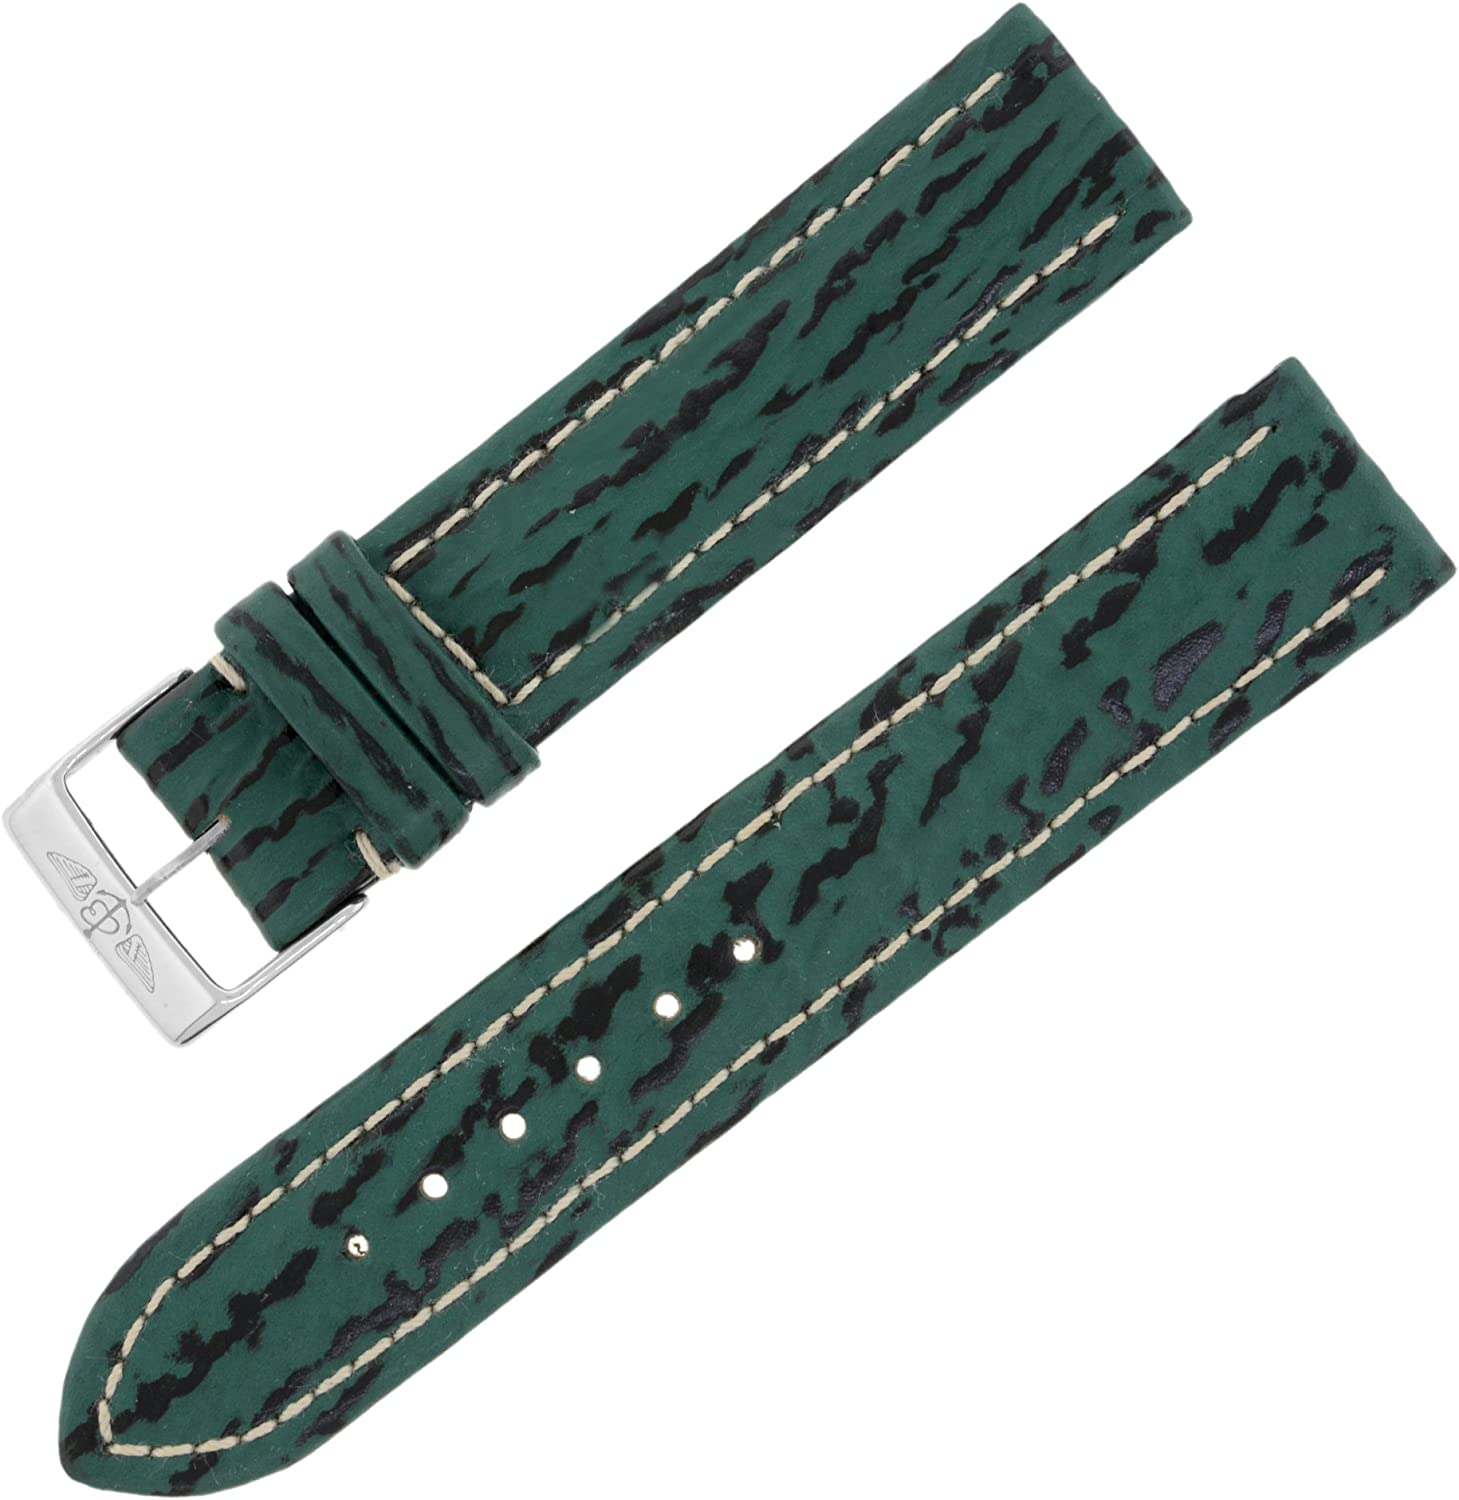 Breitling Y999 18-18mm Genuine Leather Green Unisex Watch Band w. Buckle